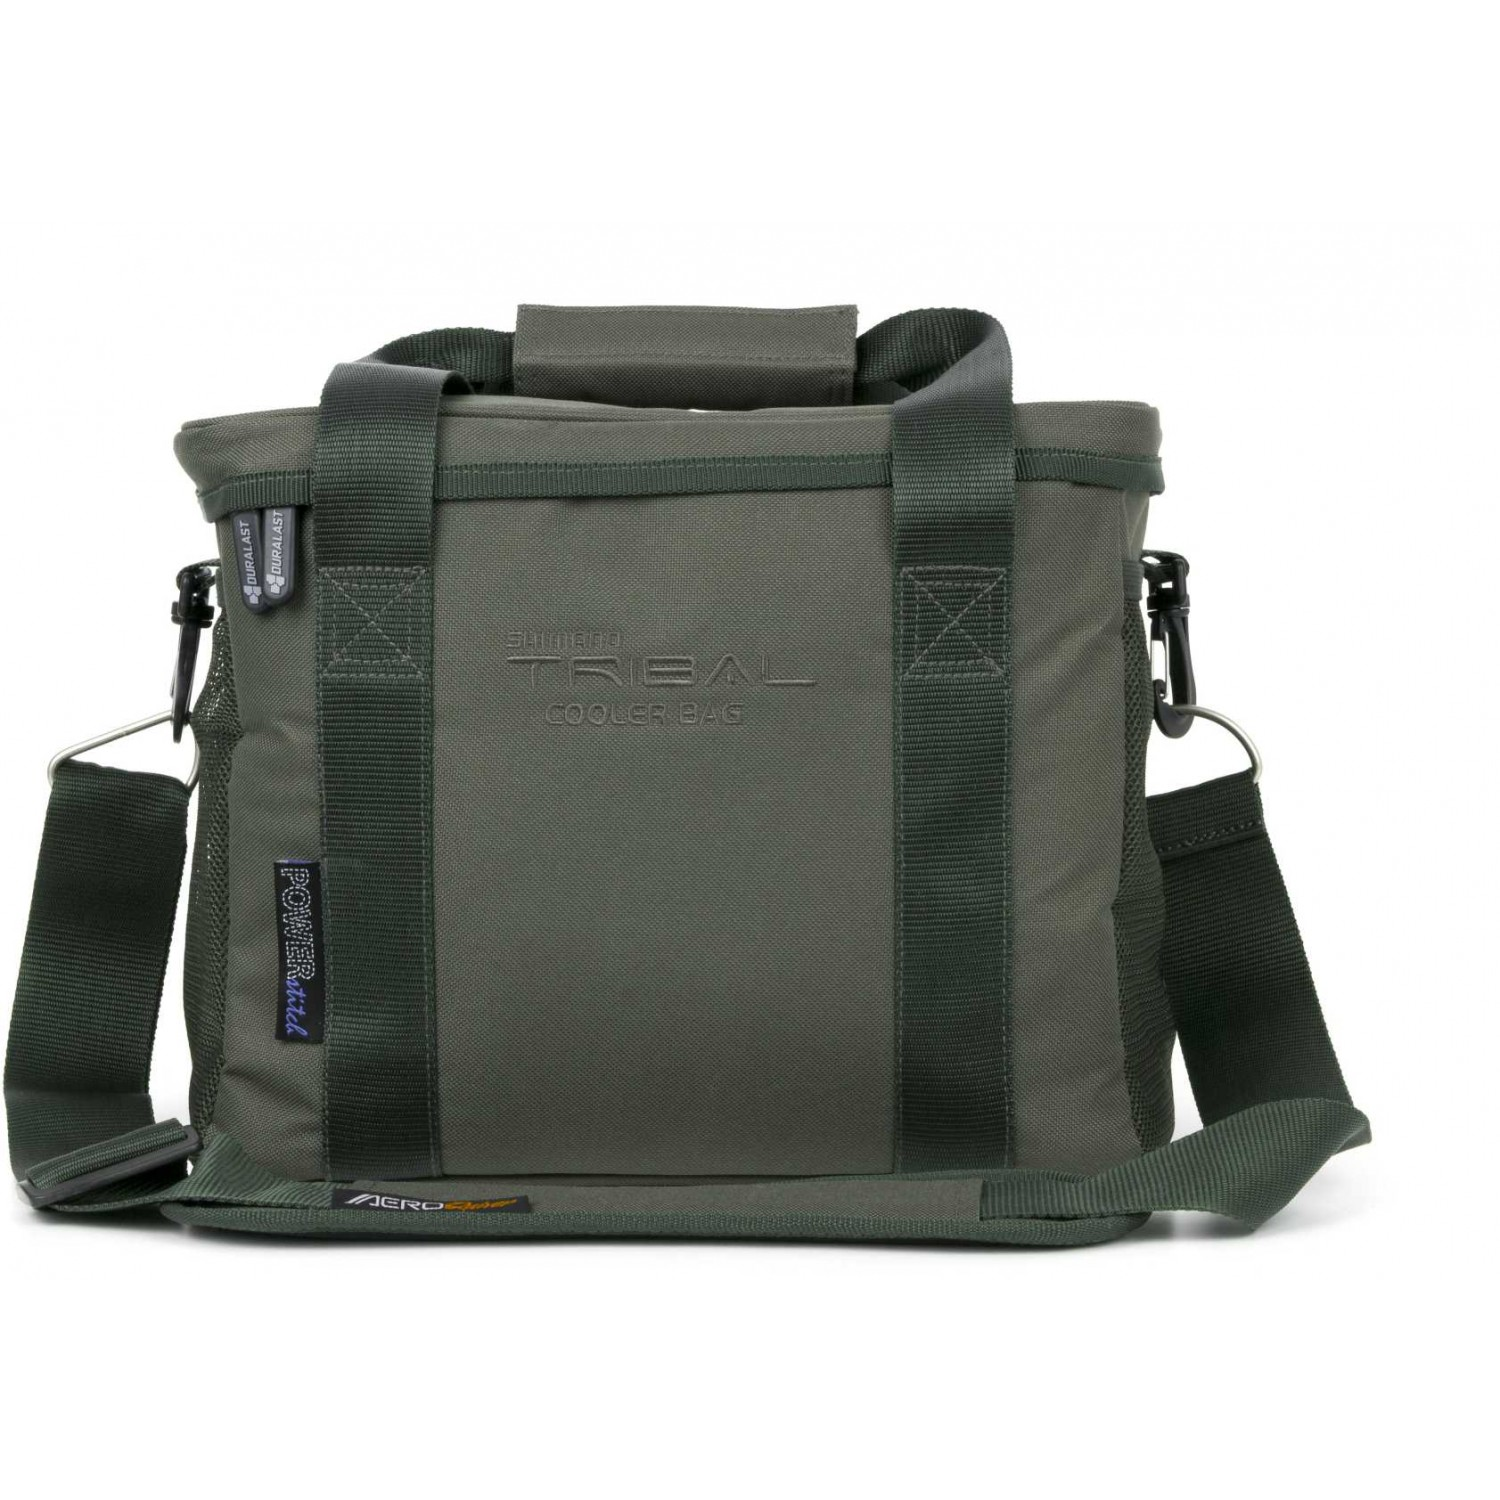 Shimano Tribal Cooler bag